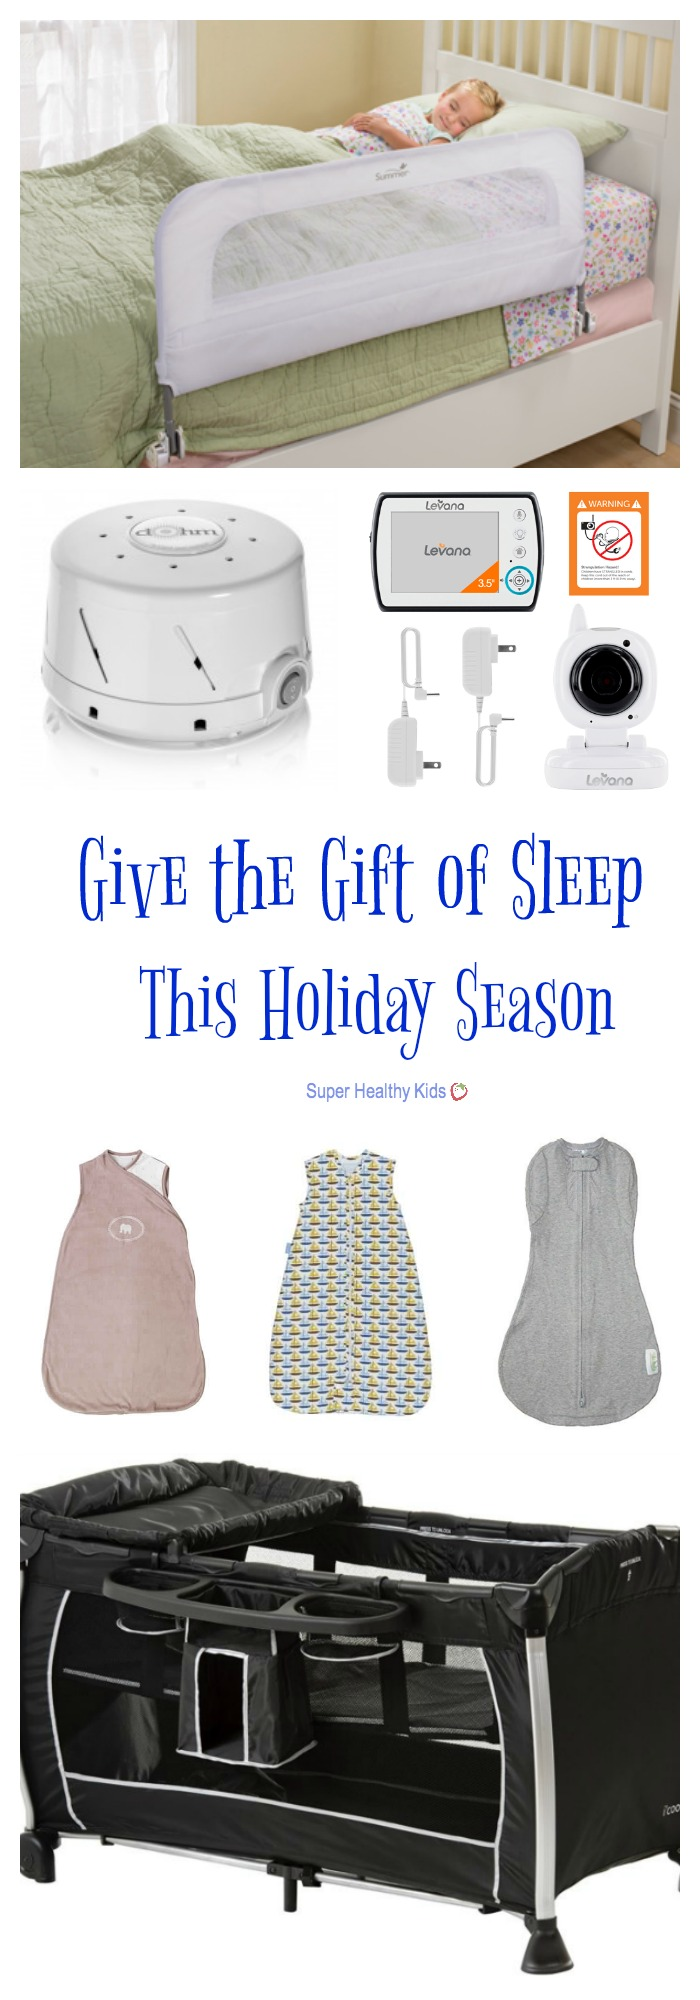 Give the Gift of Sleep This Holiday Season. Give the gift of sleep to the little one on your list this holiday season. We've got the top 5 sleep gifts to help your child rest easy. http://www.superhealthykids.com/give-gift-sleep-holiday-season/